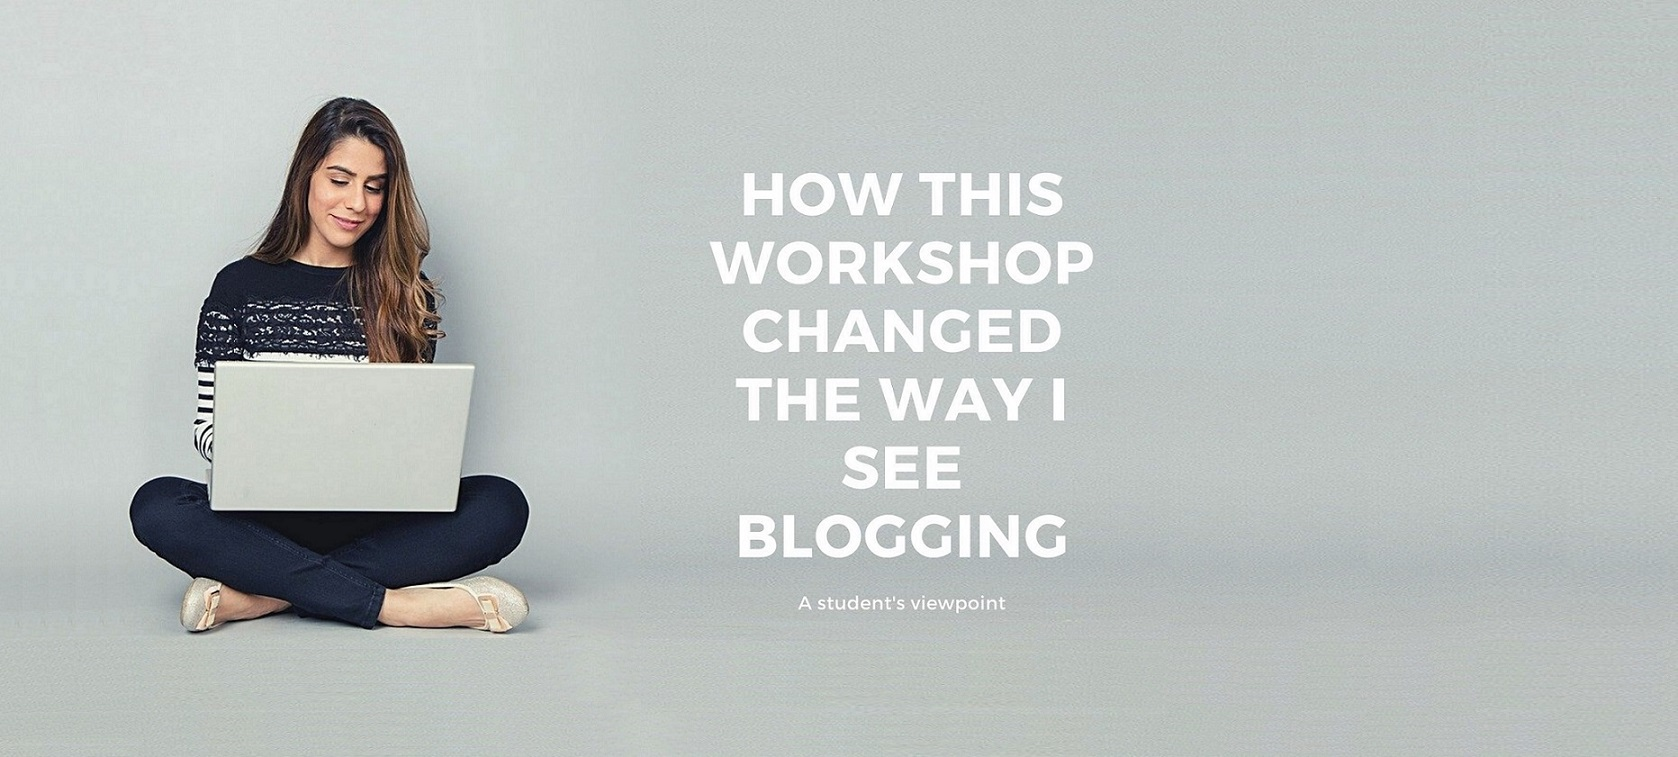 How this Workshop Changed the Way I see Blogging by Charikleia Sachpazidou